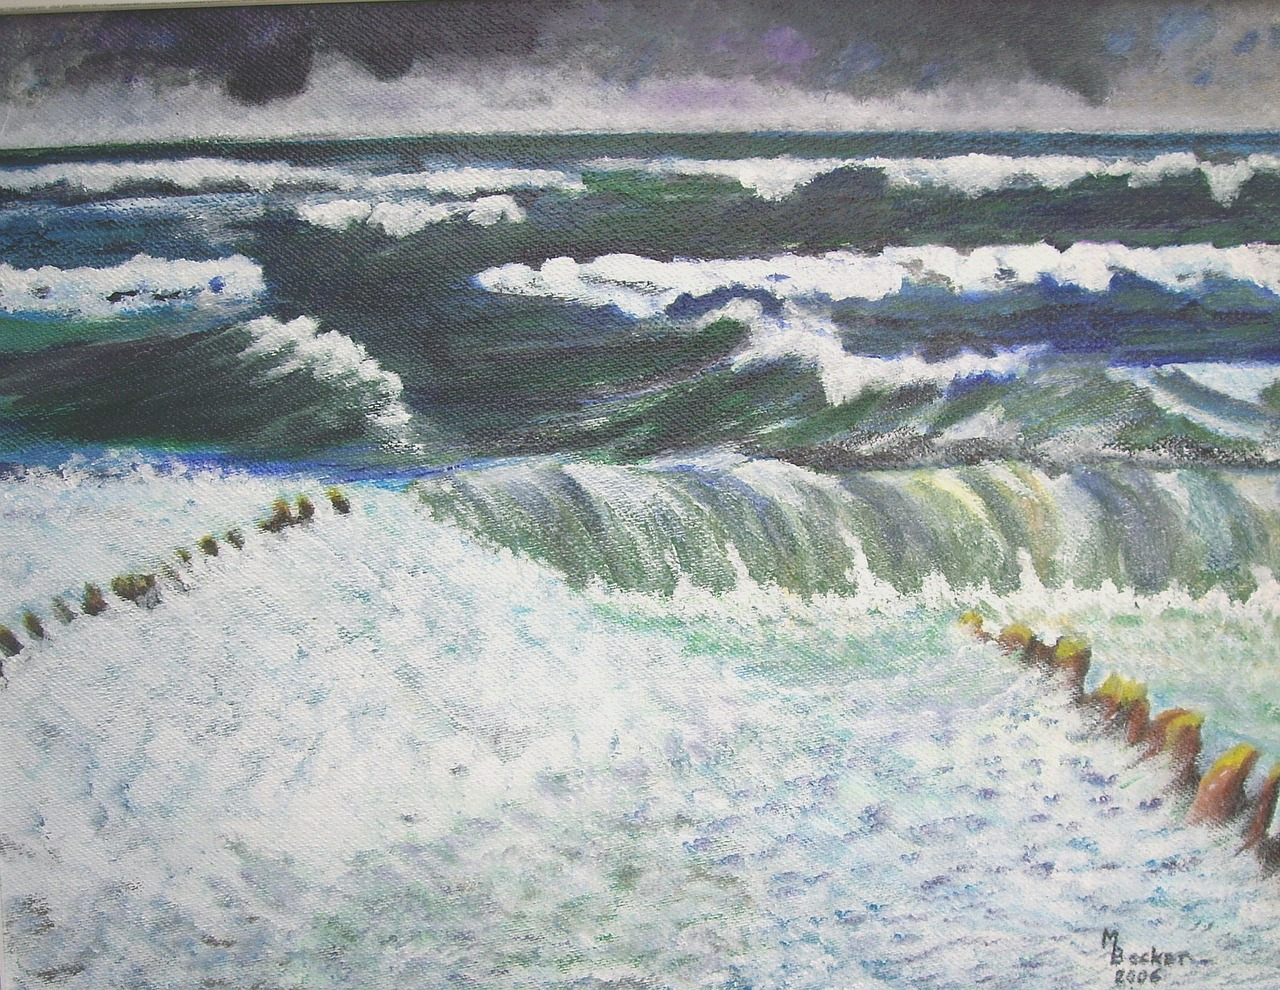 sea painting image free photo